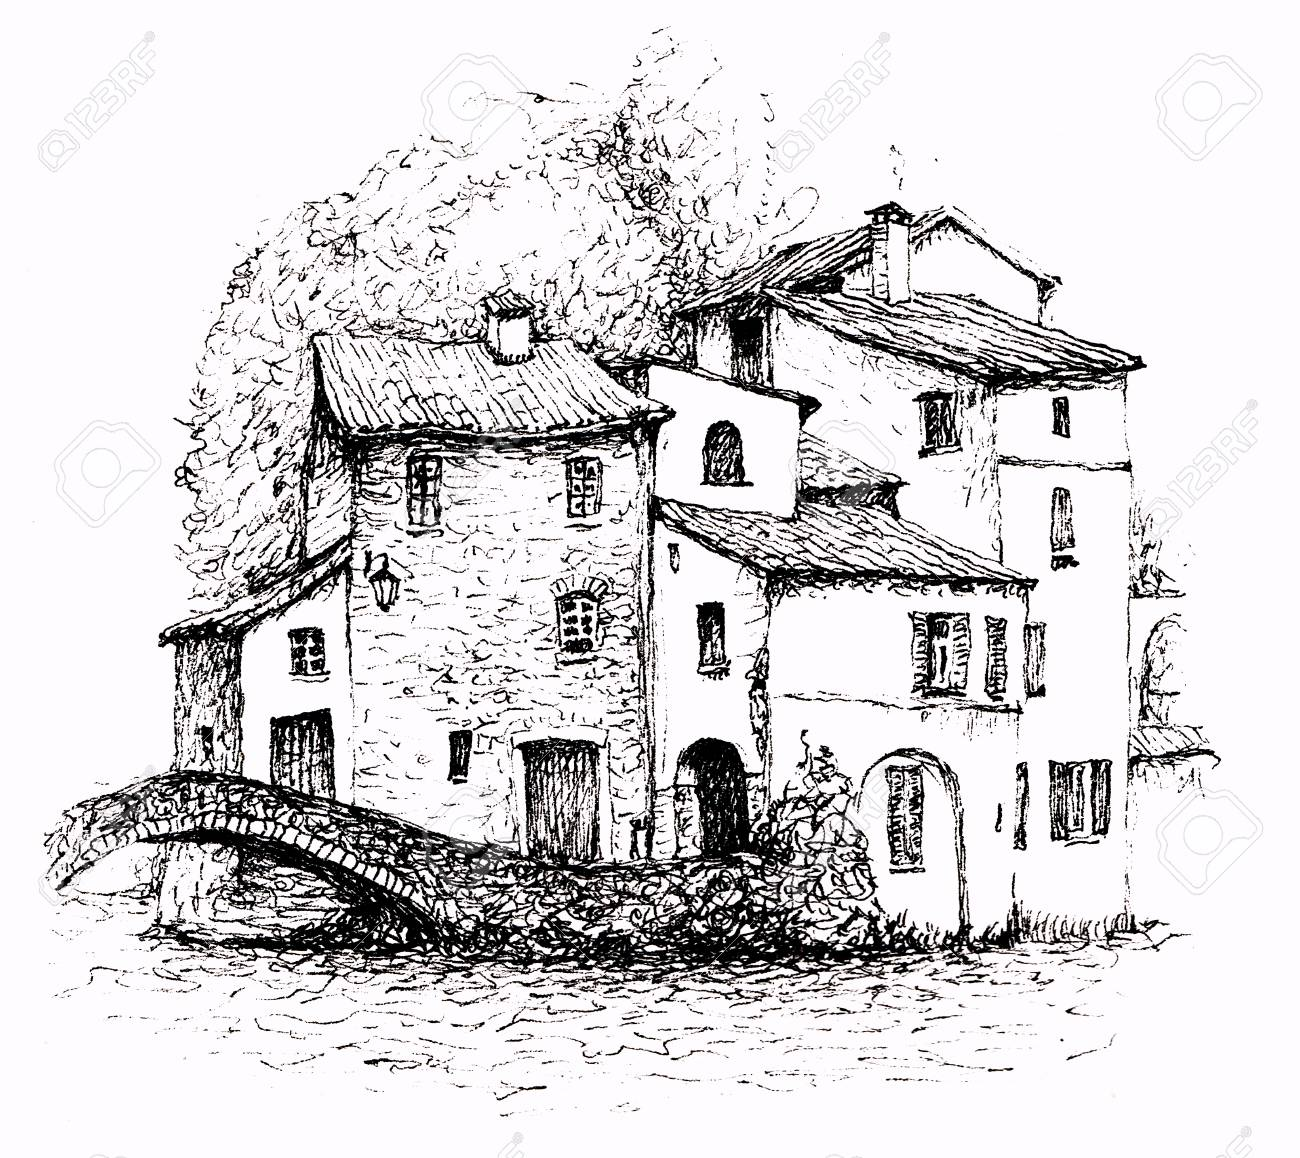 A pen sketch of italian landscape a village on a lake called como in the alps old stone houses with tile roofs trees behind them and a little bridge